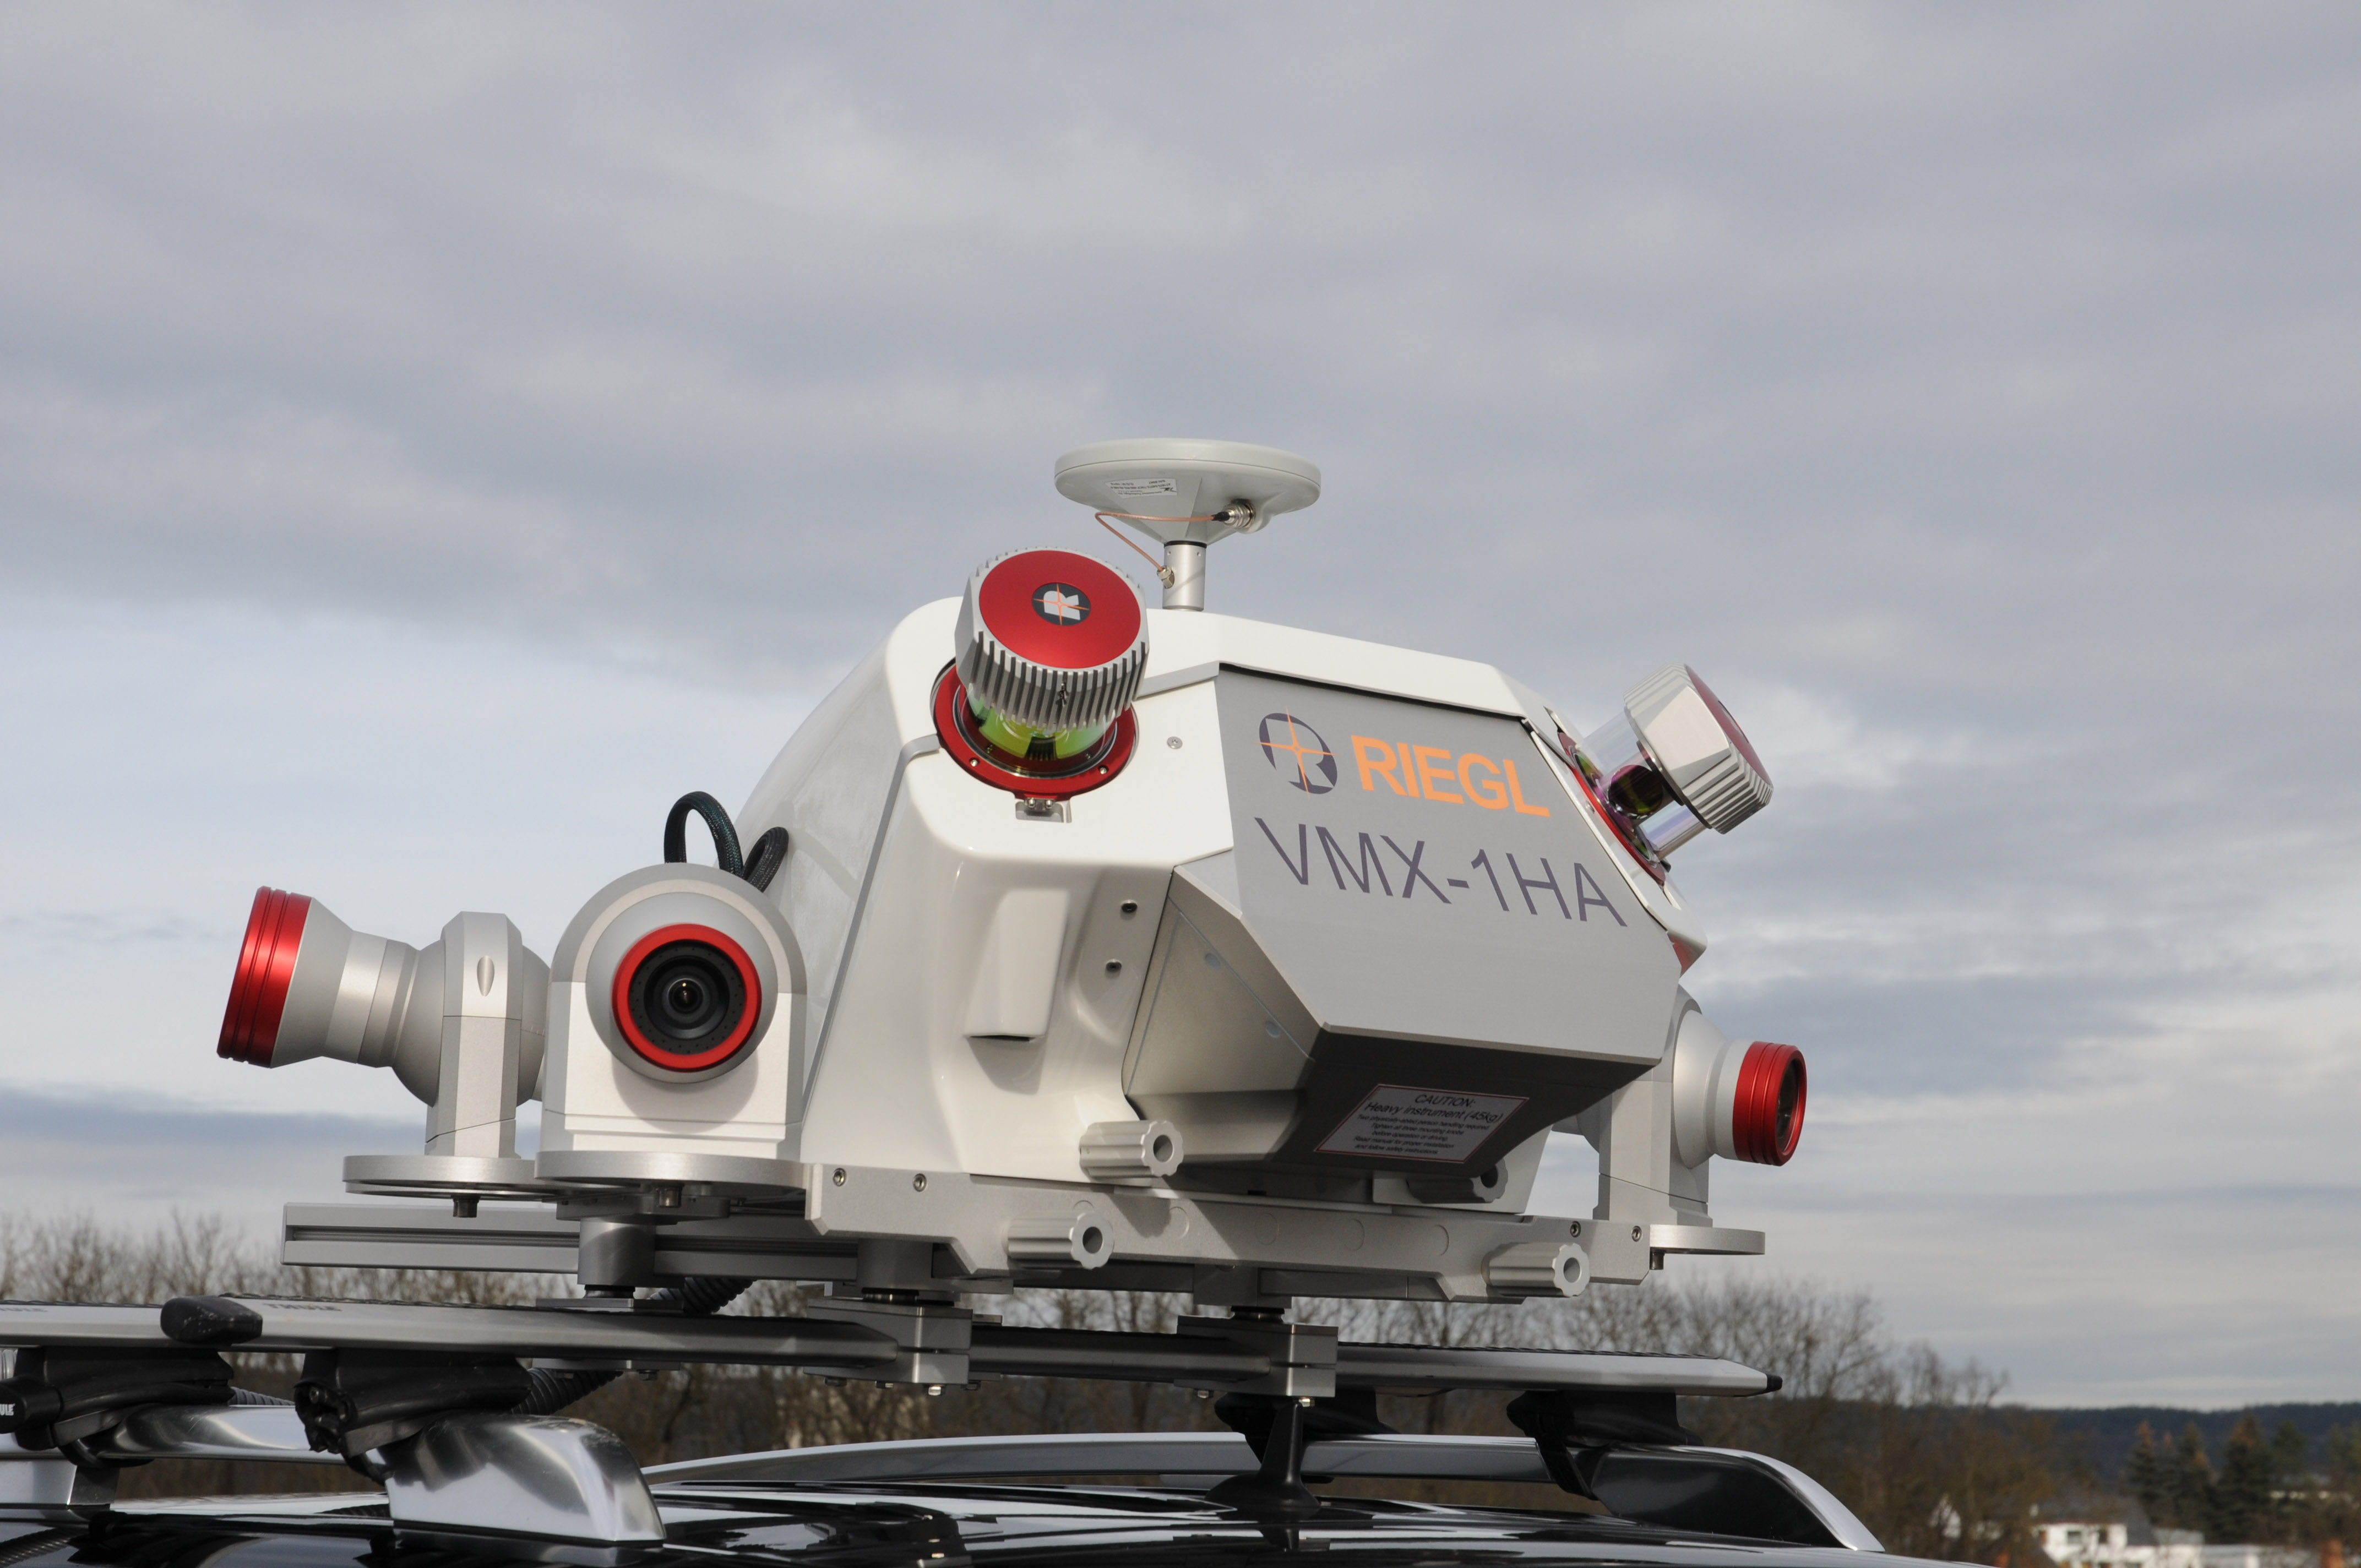 NEW RIEGL High-Speed Mobile Mapping Turnkey Systems in the